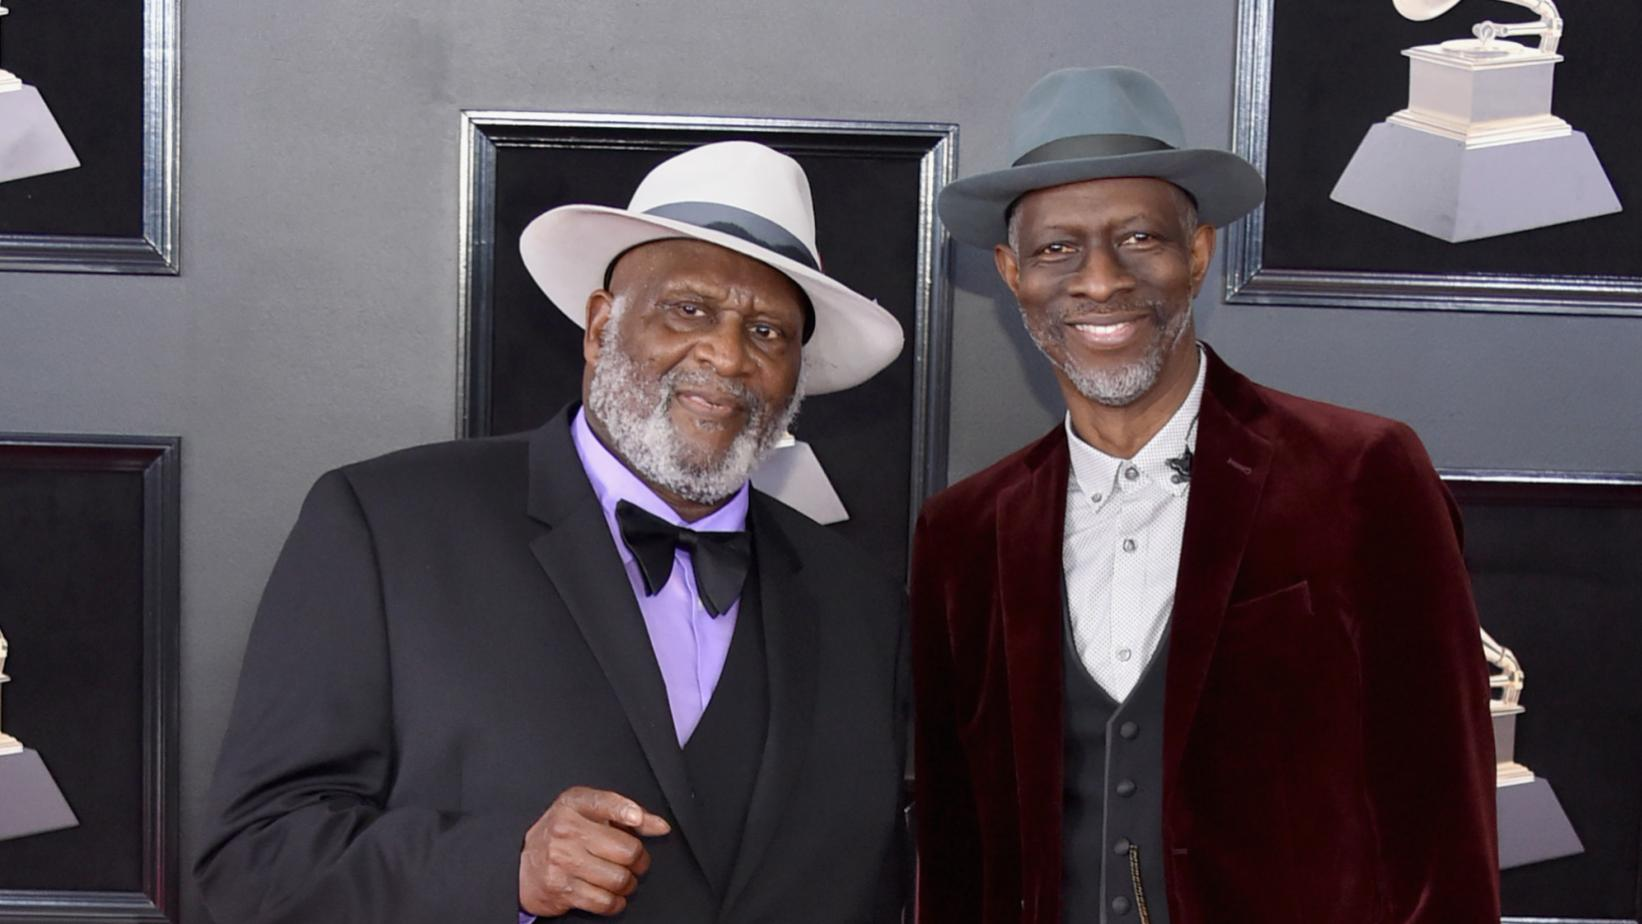 Taj Mahal and Keb' Mo' at the 60th GRAMMY Awards in 2018